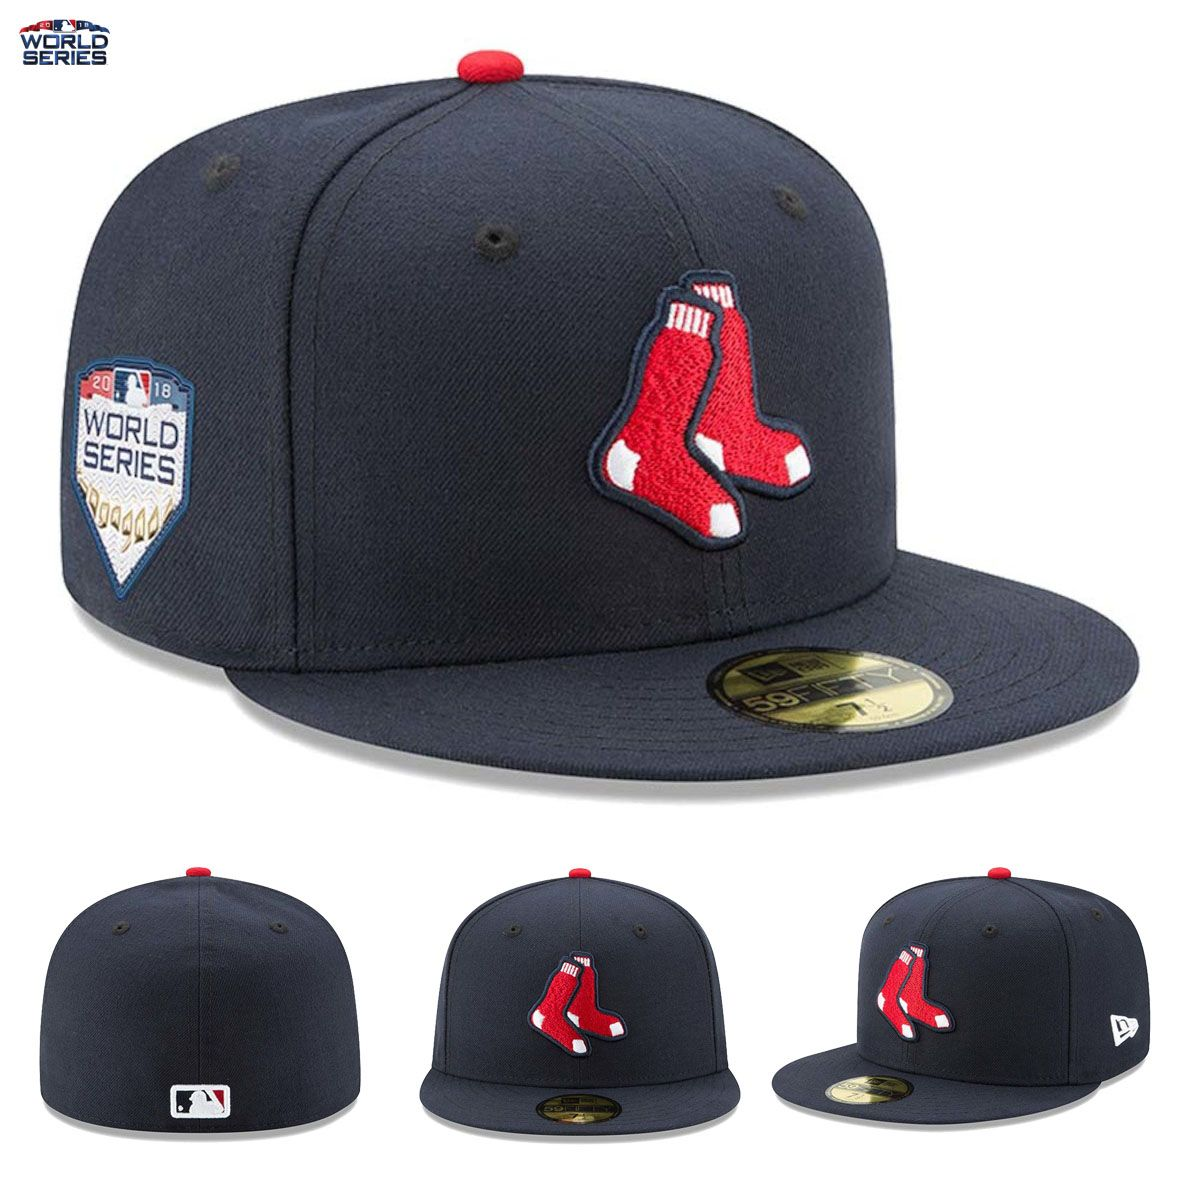 409488f4644 Boston Red Sox New Era 59FIFTY Fitted Hat Cap 2018 World Series Bound Side  Patch THEY MADE IT!!!! Boston Red Sox Are Officially World Series Material!!